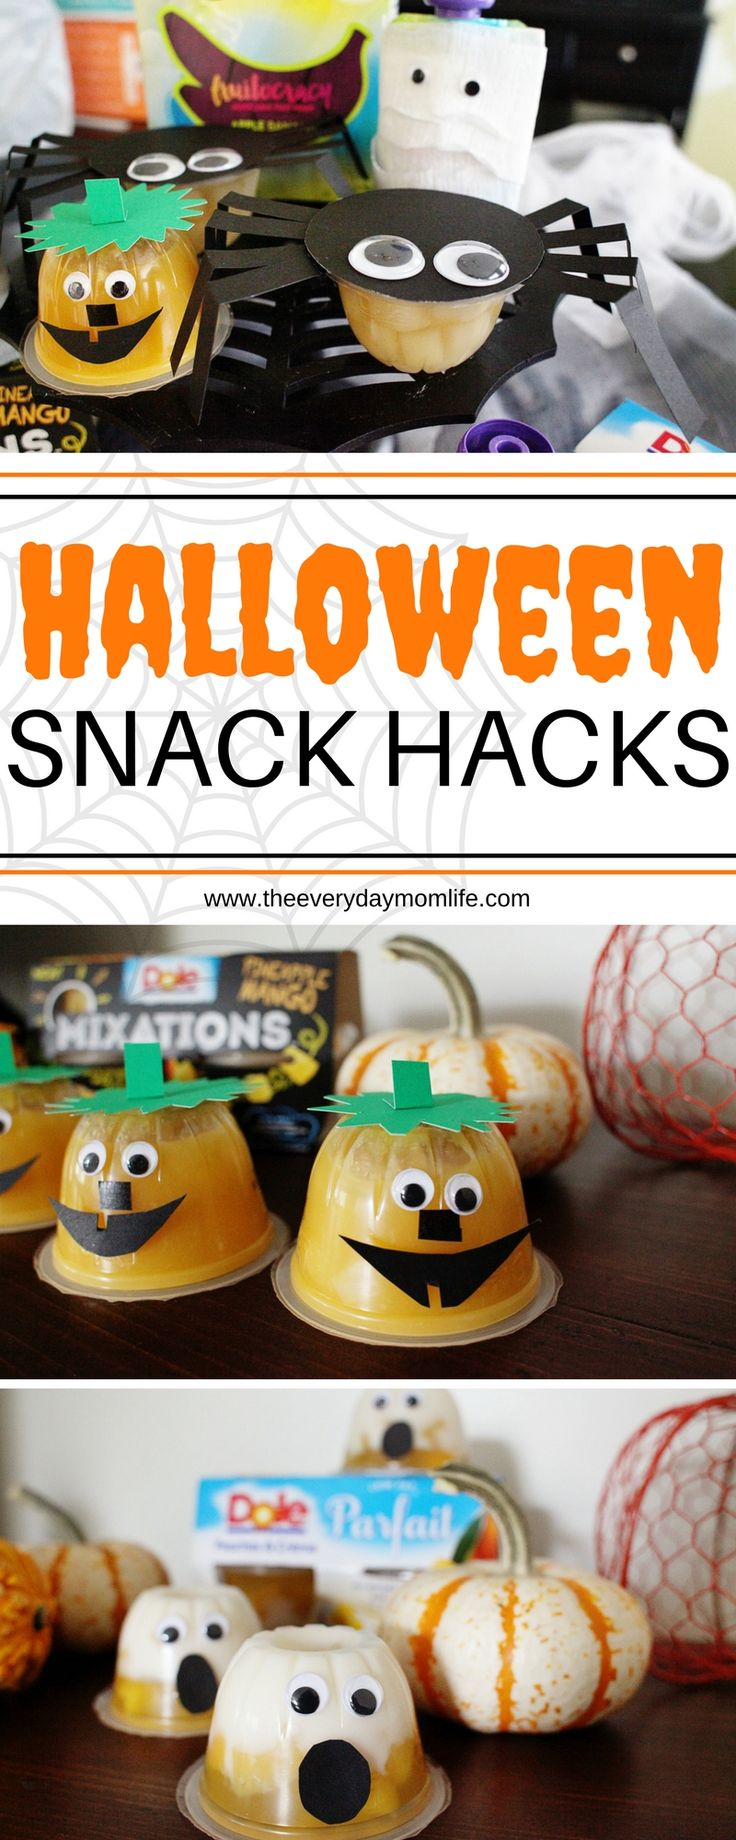 Halloween Snack Hacks with Dole - The Everyday Mom Life